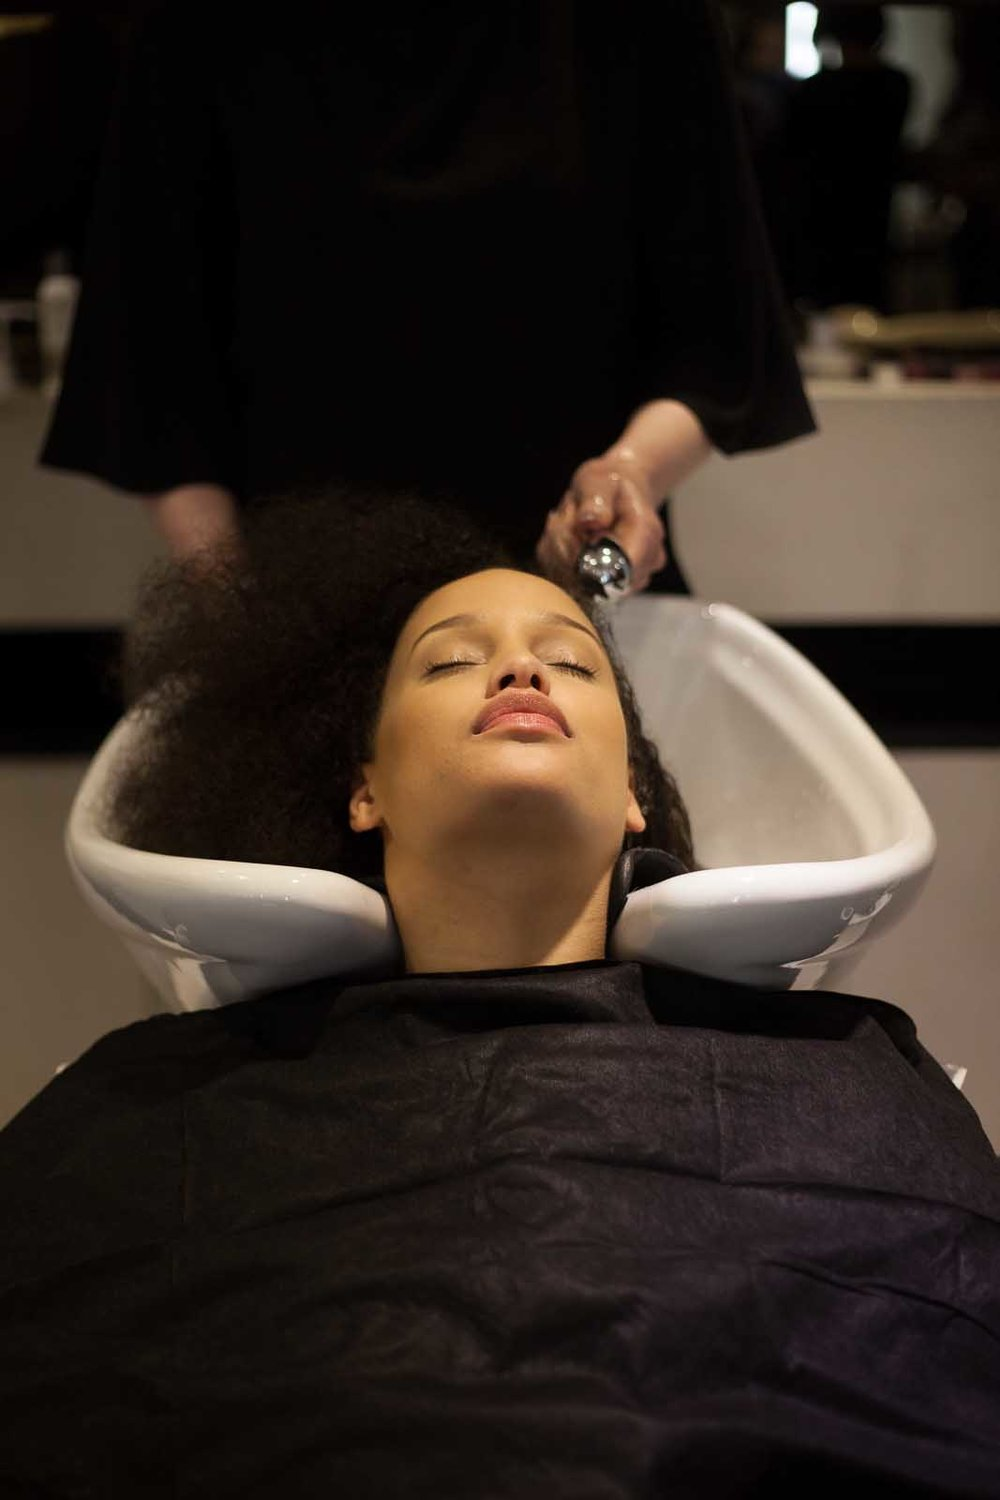 - To prep the hair and remove product build-up, the hair was cleansed with Texture Release™Scalp Rejuvenating Sulfate-Free Shampoo